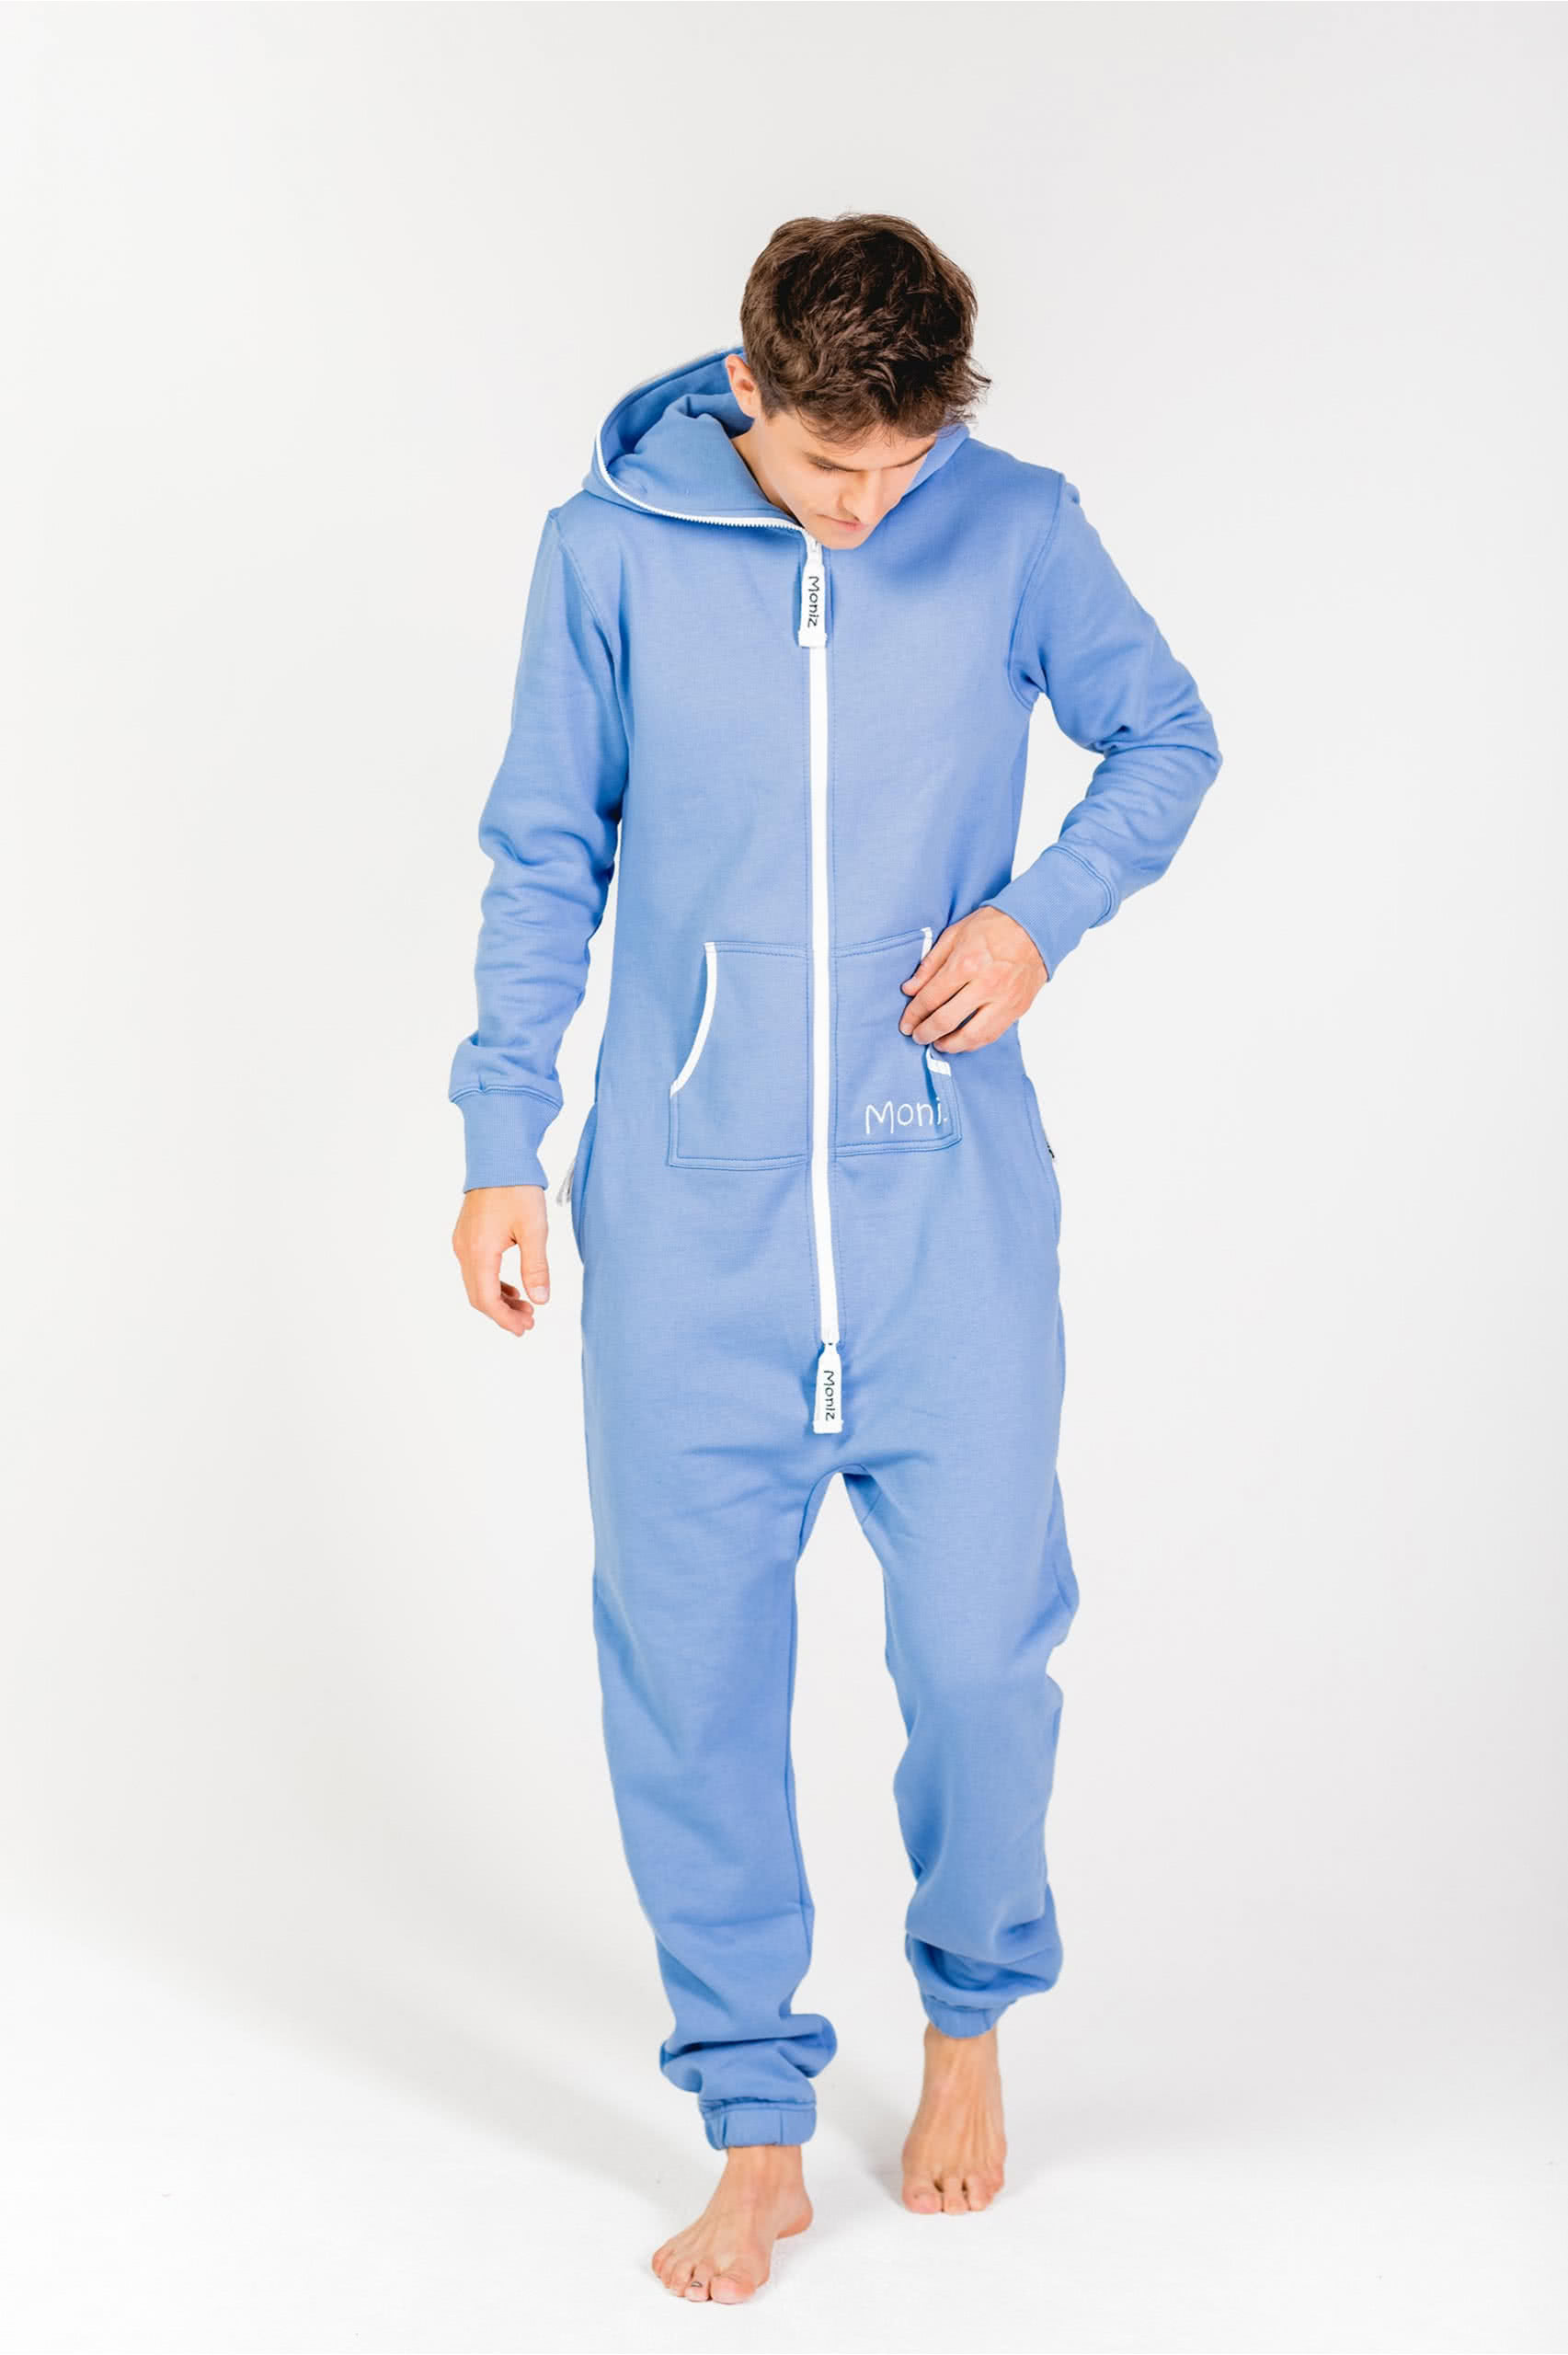 Moniz Herren Jumpsuit Graublau - Beach Blue